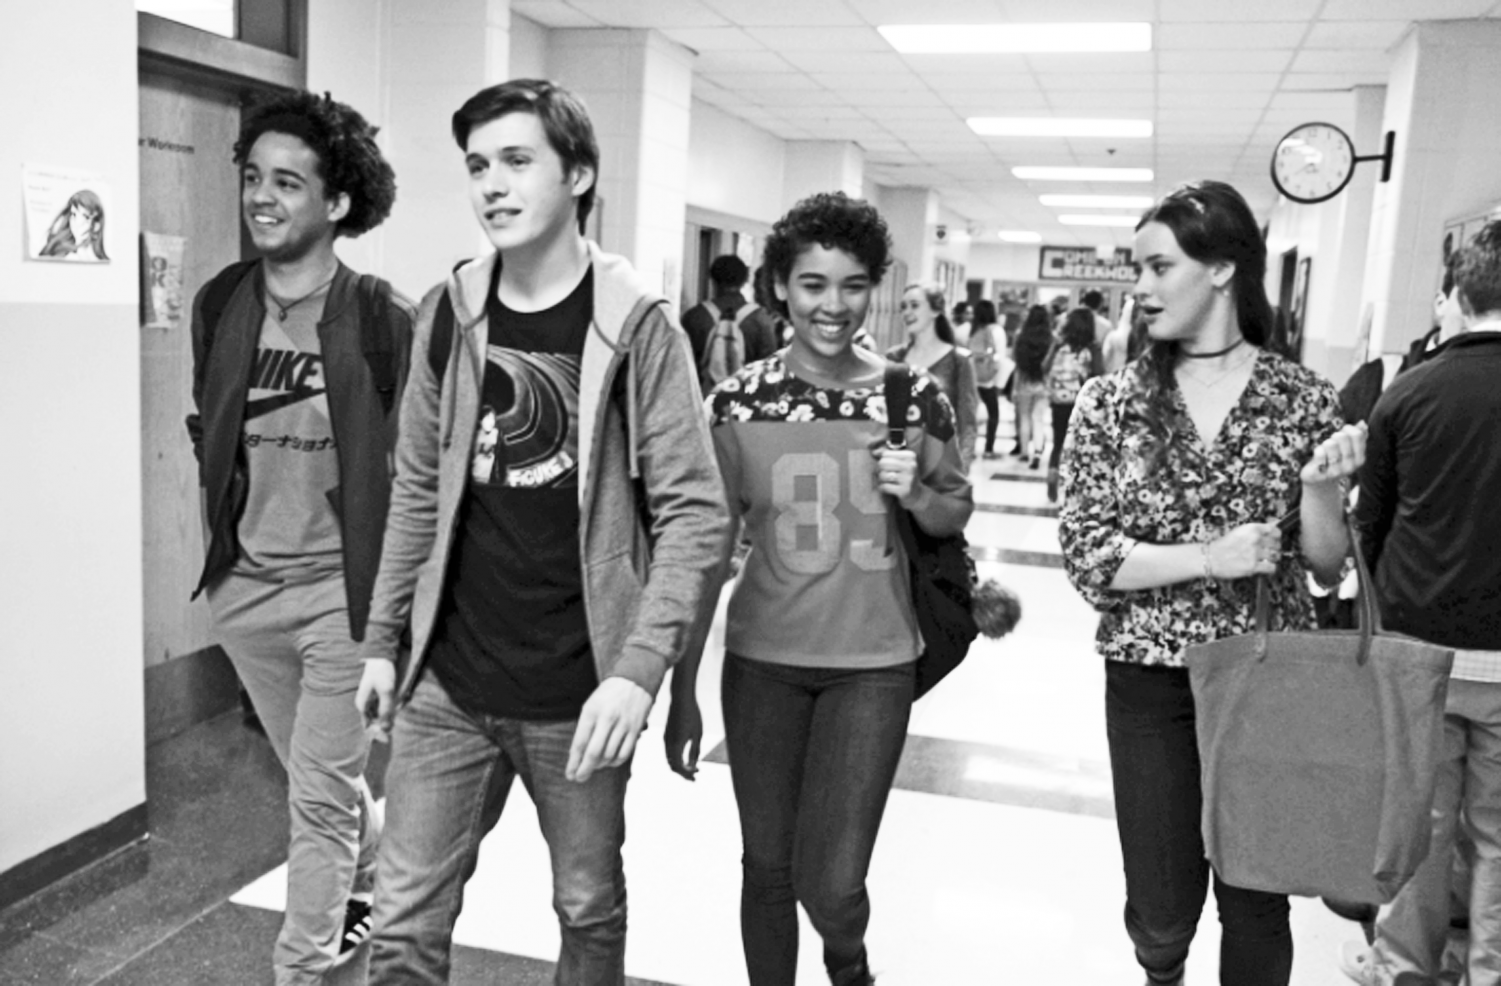 I'M COMING OUT: Shot at Gray, this scene shows Simon Spier (Nick Robinson) navigating the hallway with his friends, portrayed by (from left), Jorge Lendenborg Jr., Alexandra Shipp, and Katherine Langford